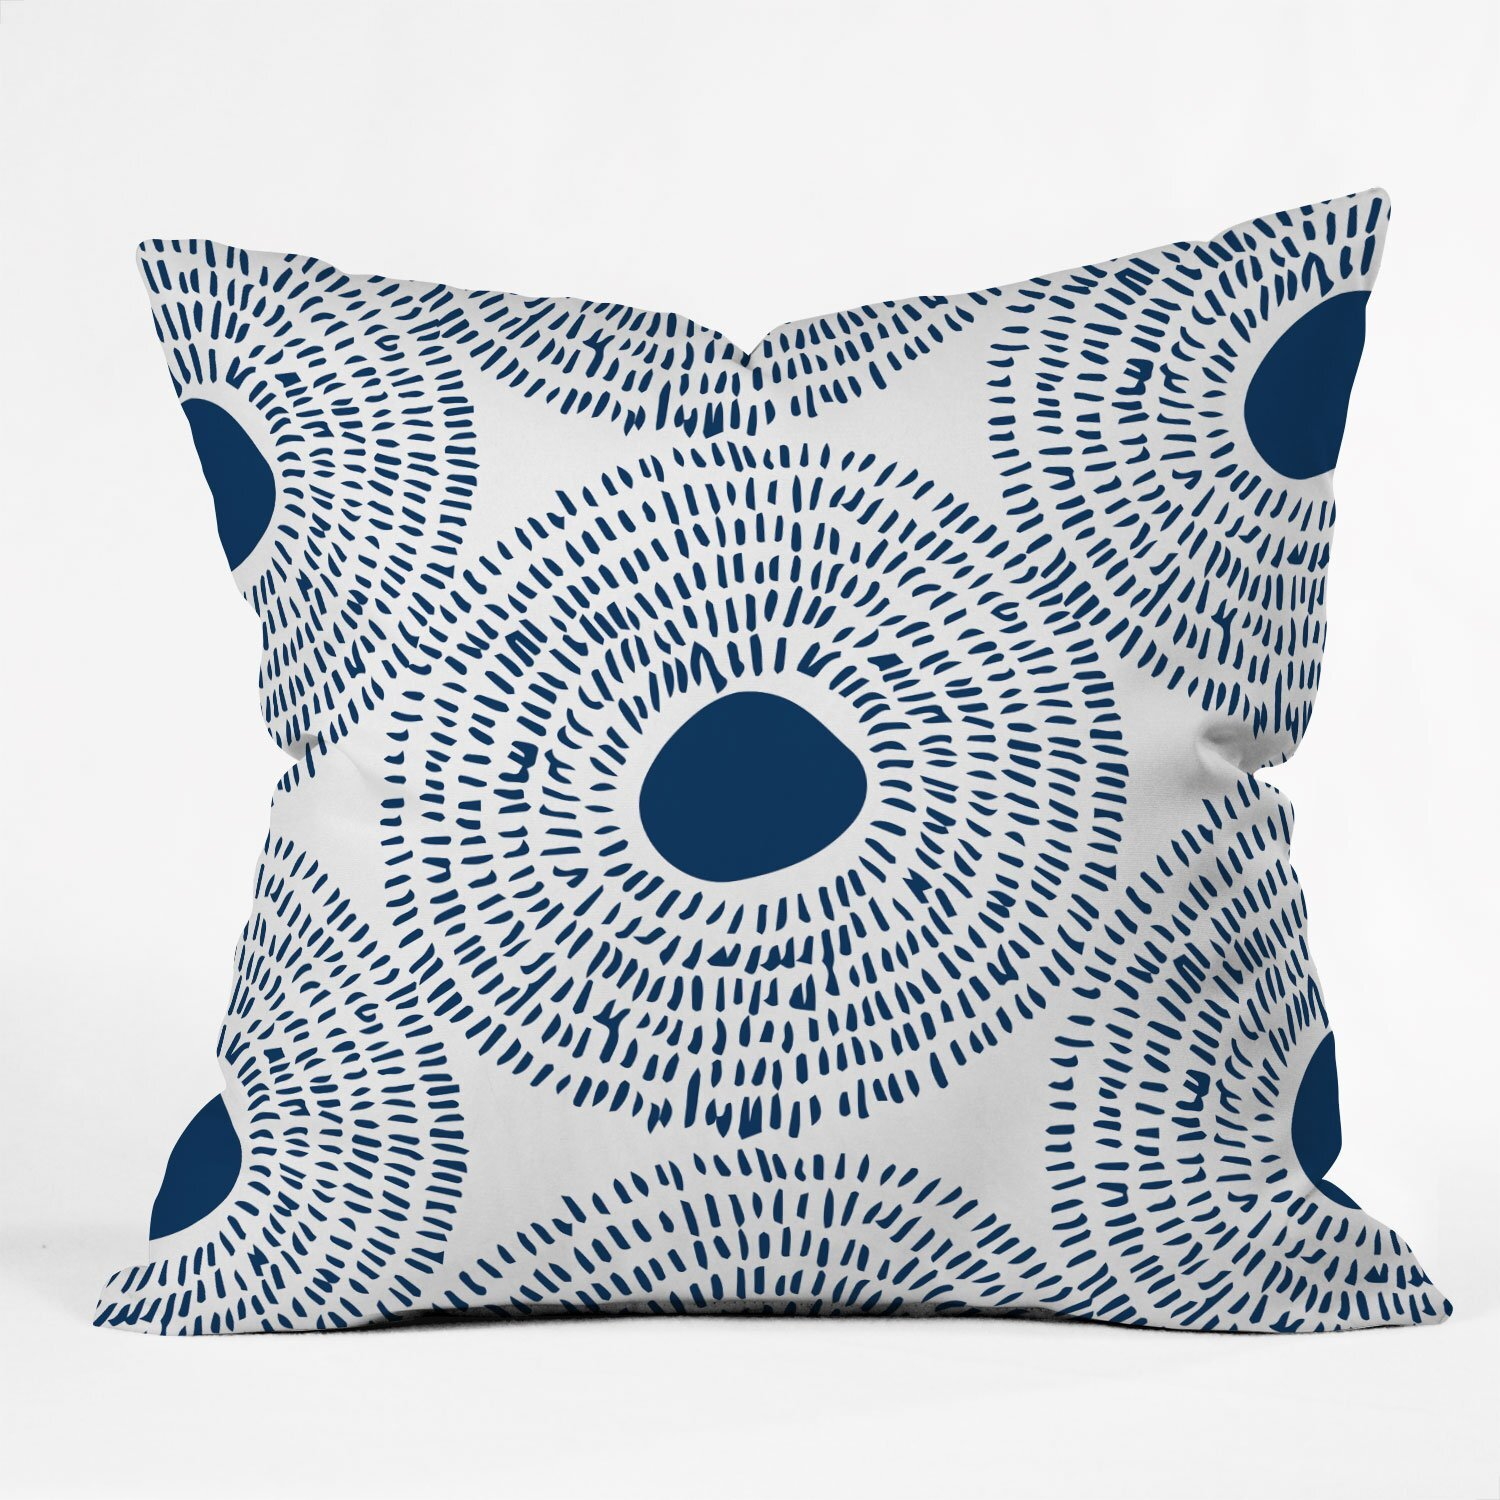 Decorative Bedroom Throw Pillows You Ll Love In 2021 Wayfair